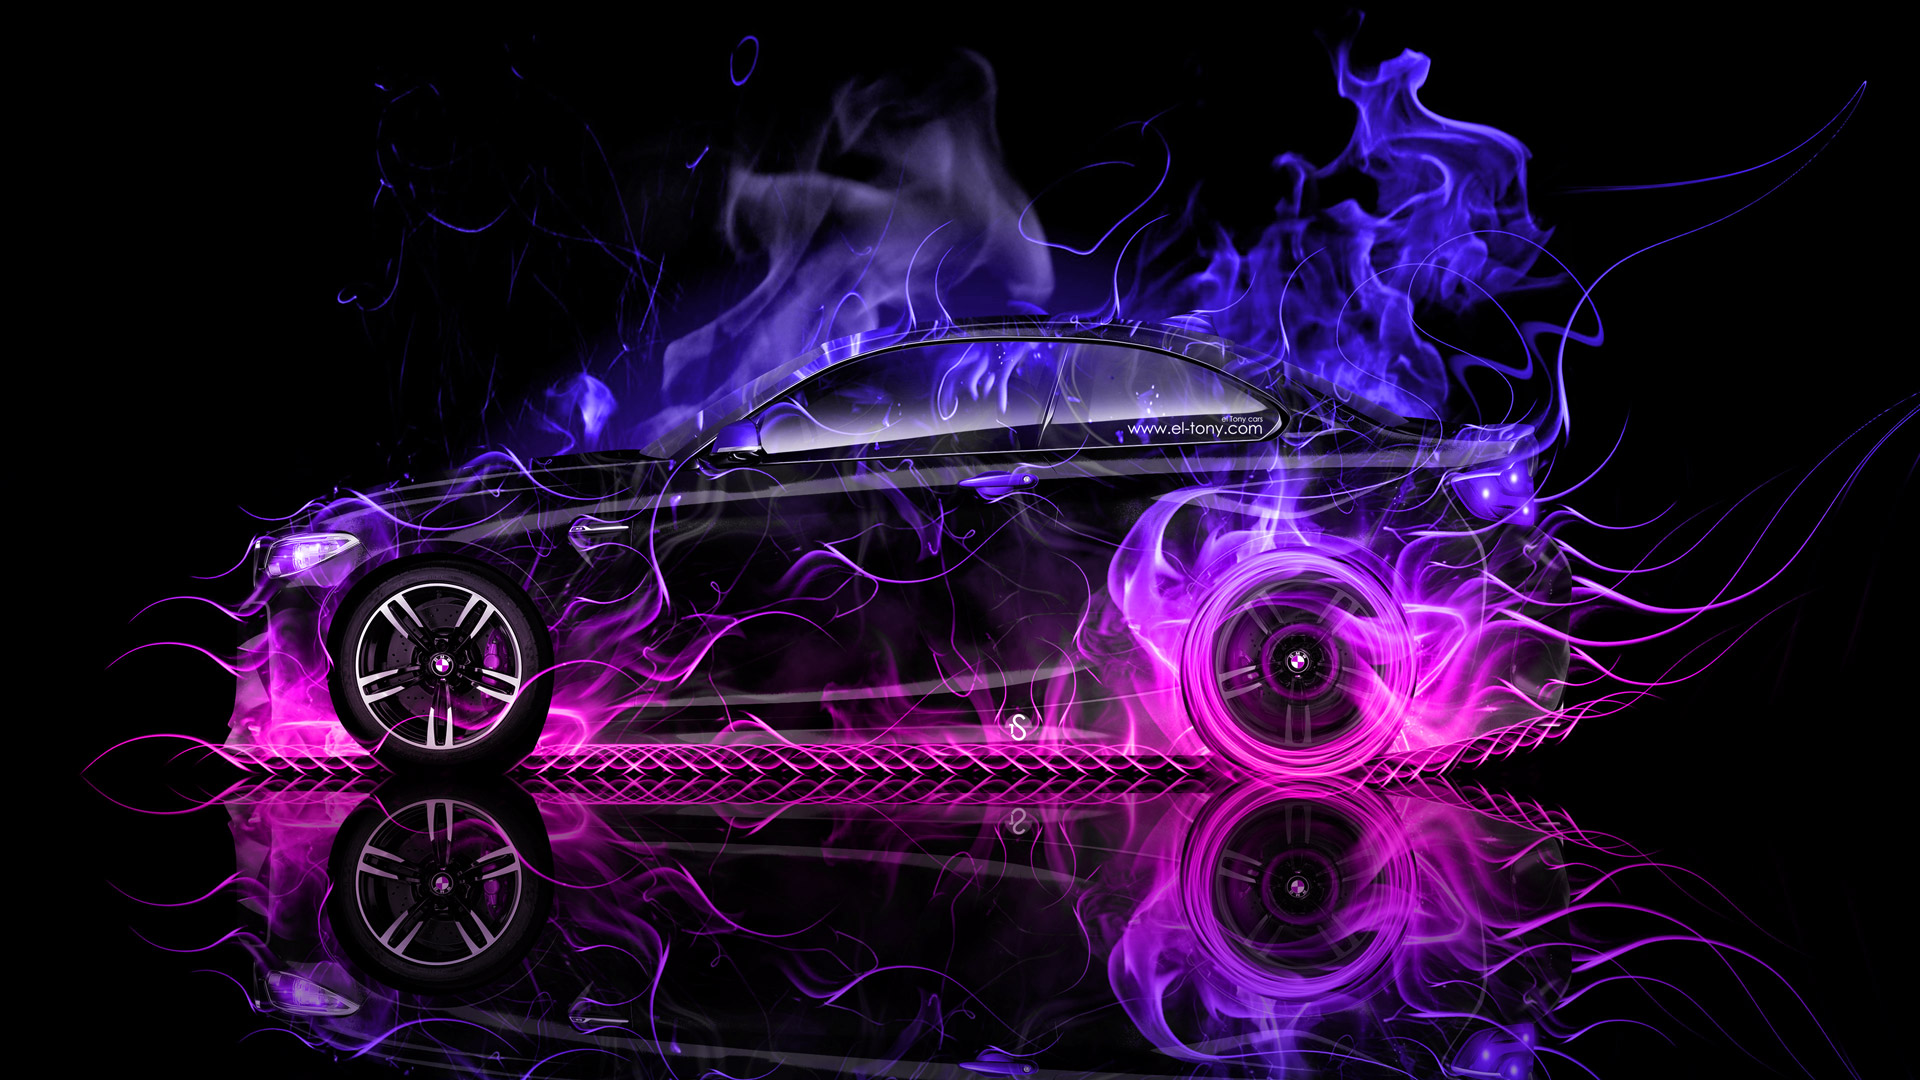 black and purple flames backgrounds bing images